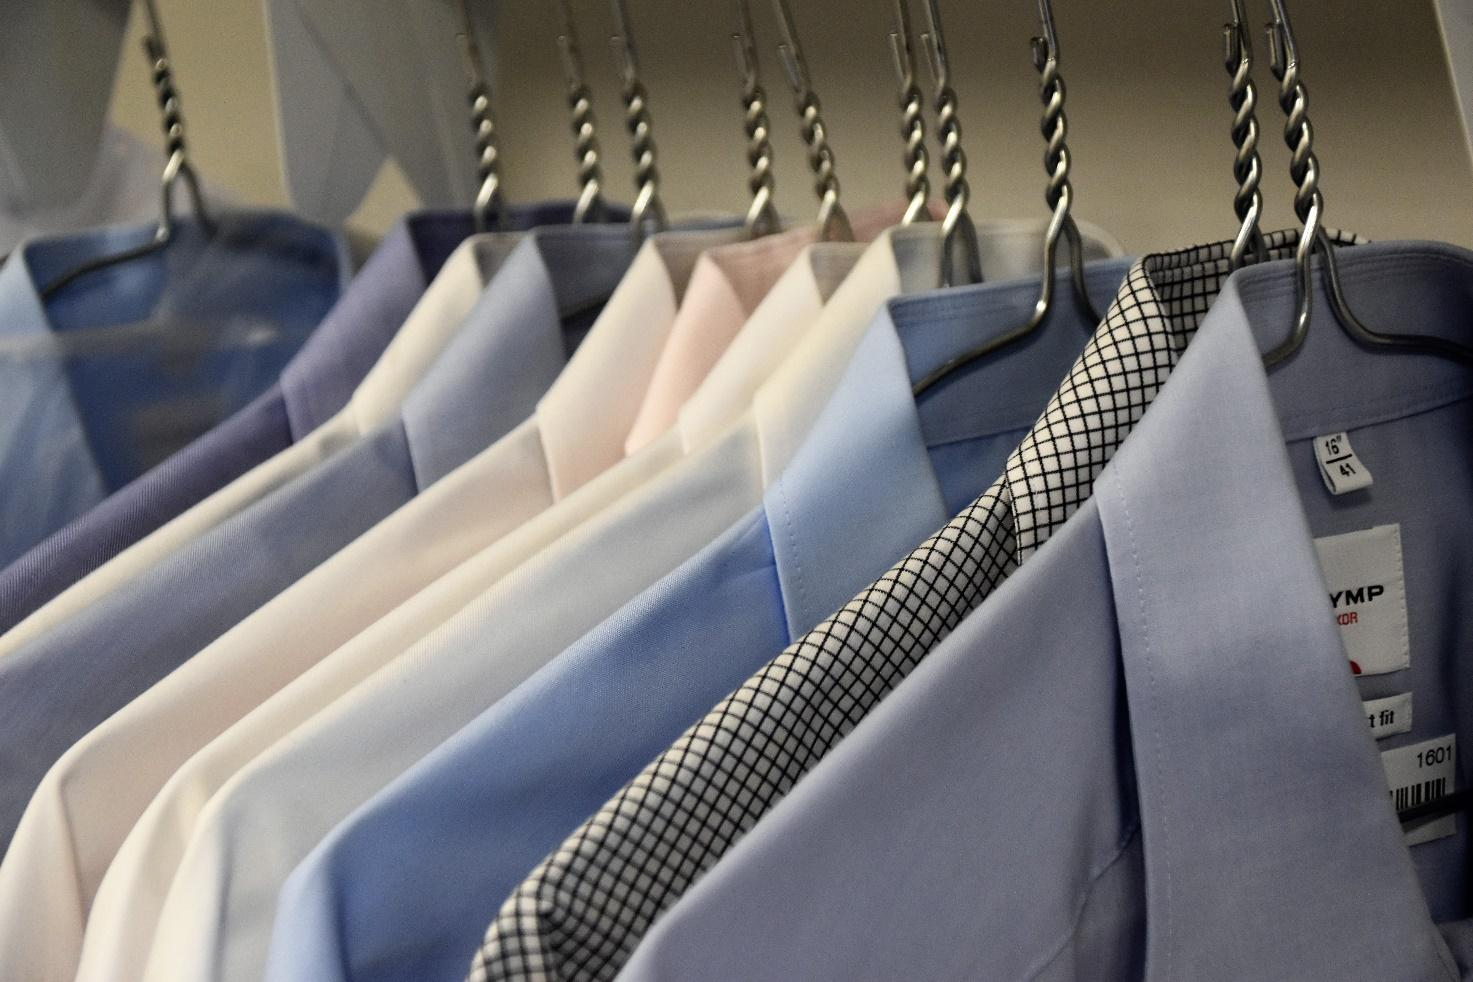 Dry cleaning services in Navi Mumbai and Thane - Phoenix Laundry